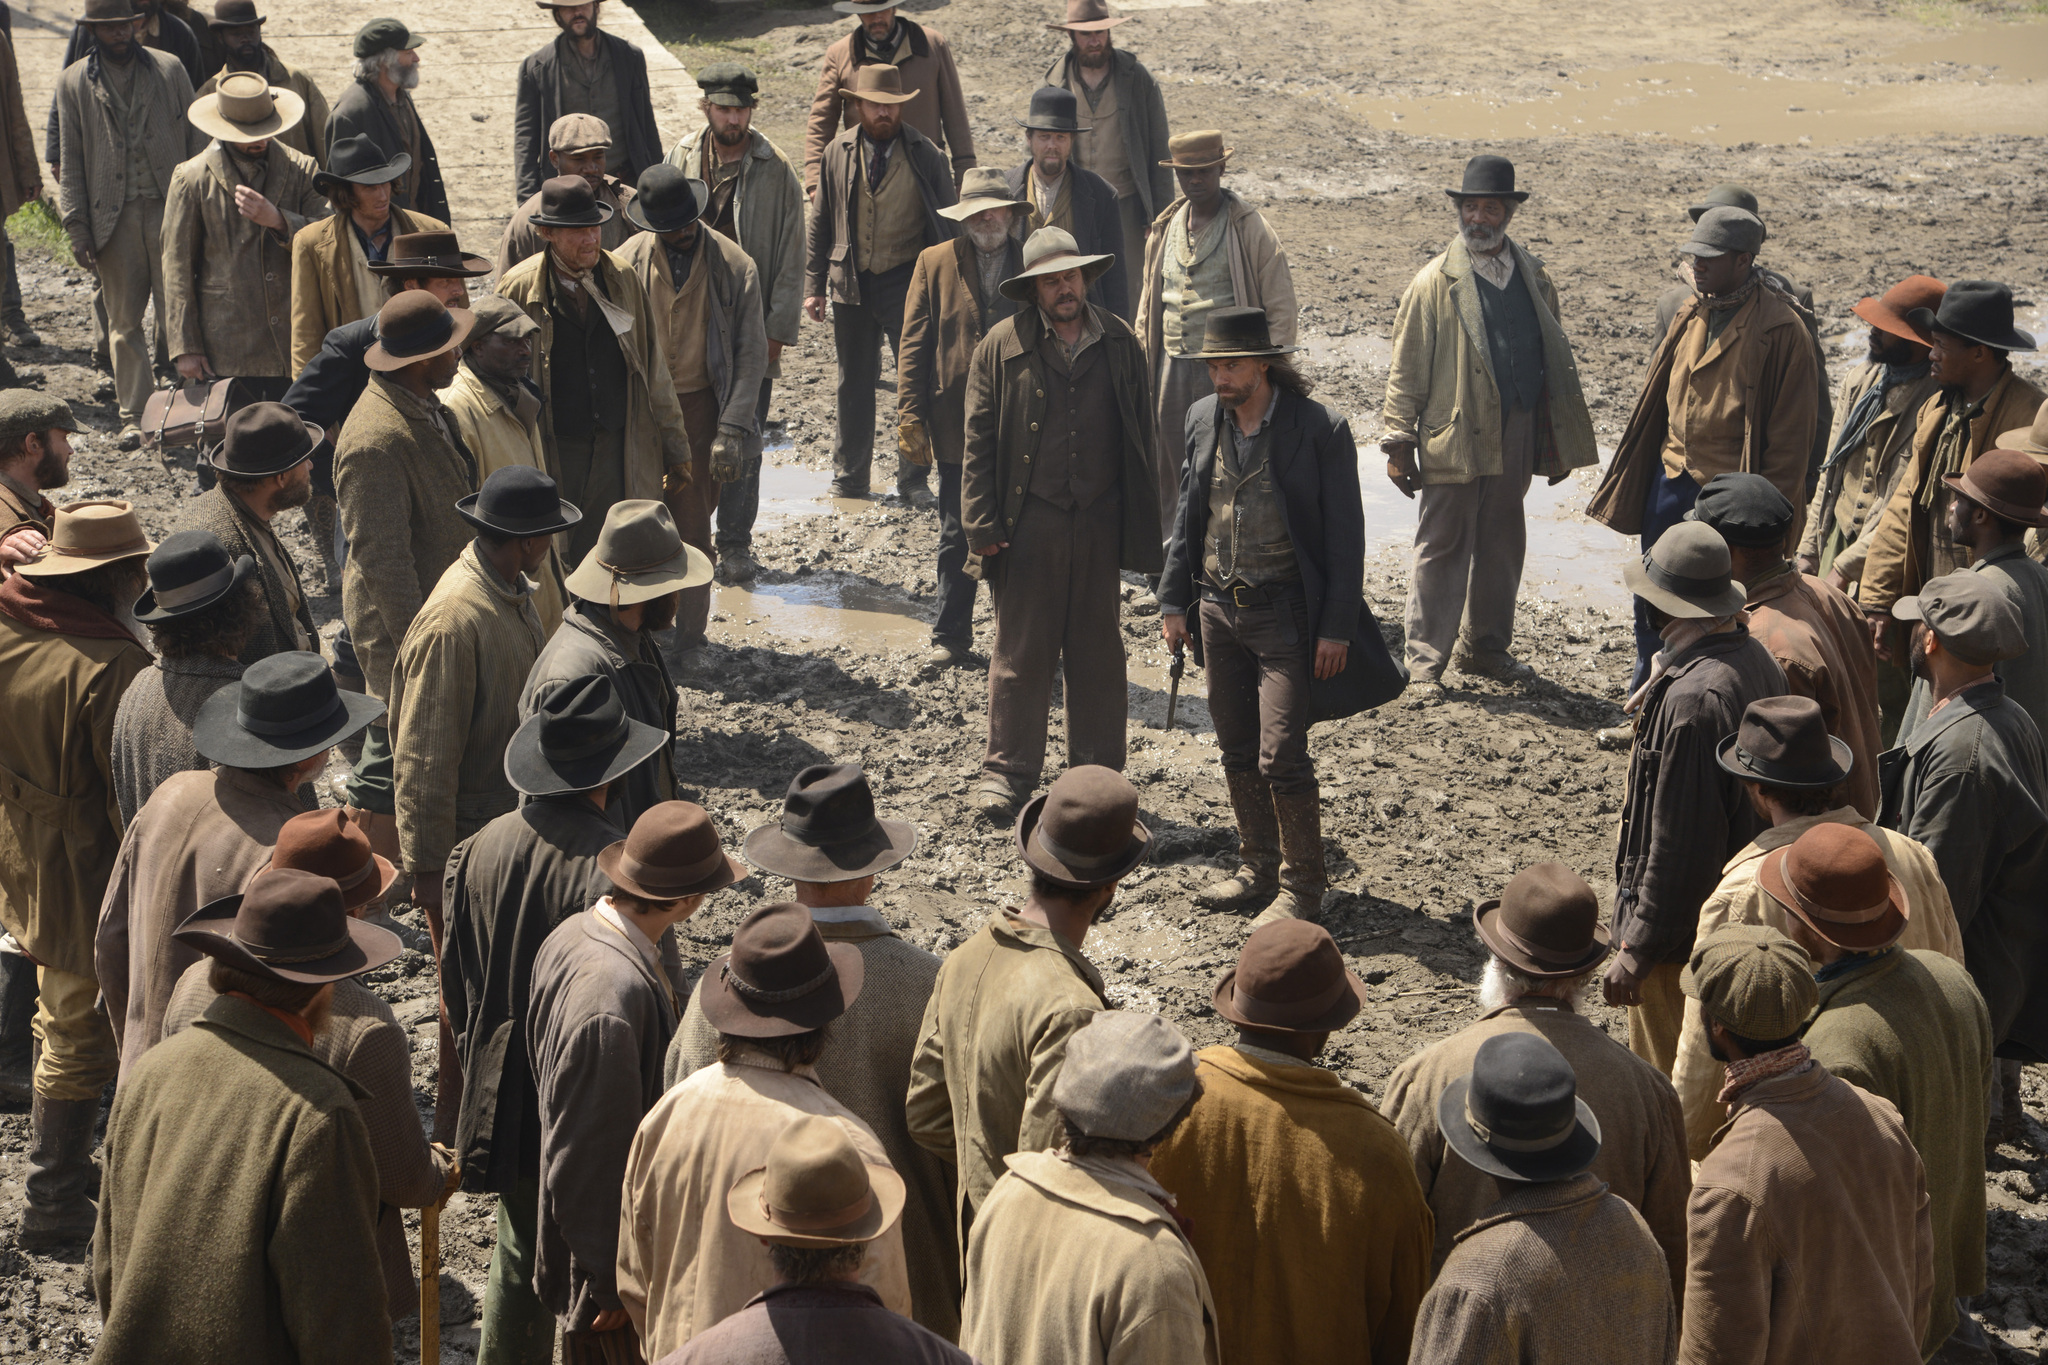 Anson Mount and Duncan Ollerenshaw in Hell on Wheels (2011)